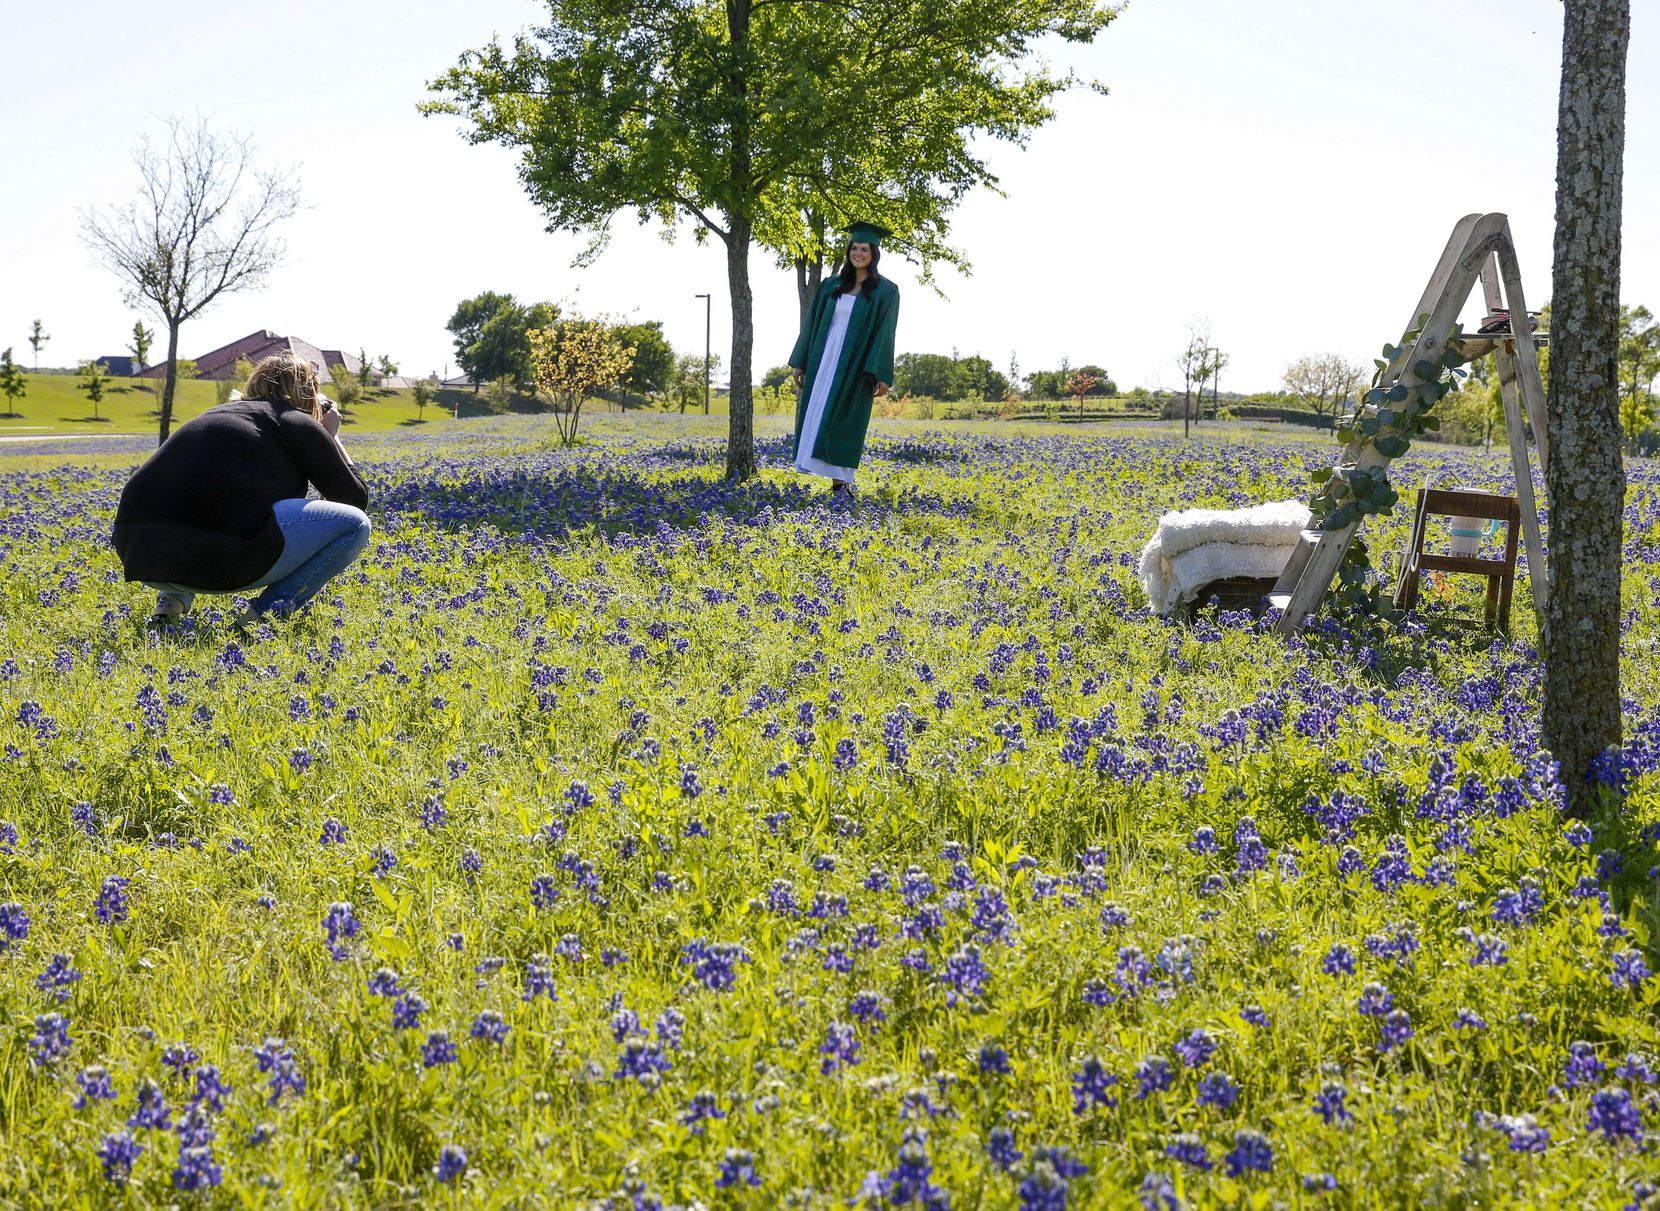 Jenny Burns of jujuB Photography takes senior pictures of Reedy High School (Frisco ISD) student Landry Thompson in a bluebonnet field in a median on W. Bethany Drive in Allen, Texas on April 14, 2019.